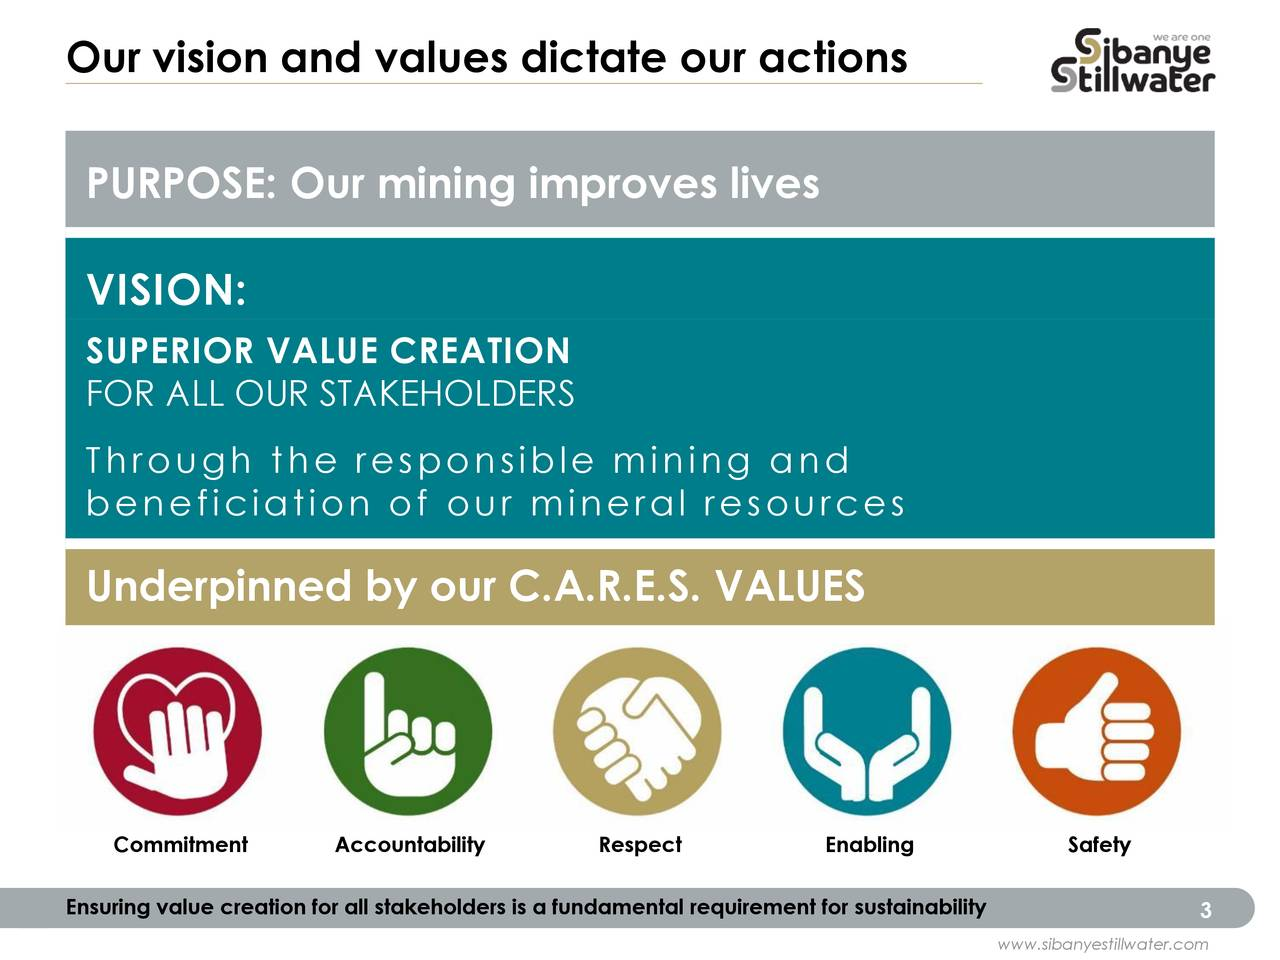 PURPOSE: Our mining improves lives VISION: SUPERIOR VALUE CREATION FOR ALL OUR STAKEHOLDERS Through the responsible mining and beneficiation of our mineral resources Underpinned by our C.A.R.E.S. VALUES Commitment Accountability Respect Enabling Safety Ensuring value creation for all stakeholders is a fundamental requirement for sustainability 3